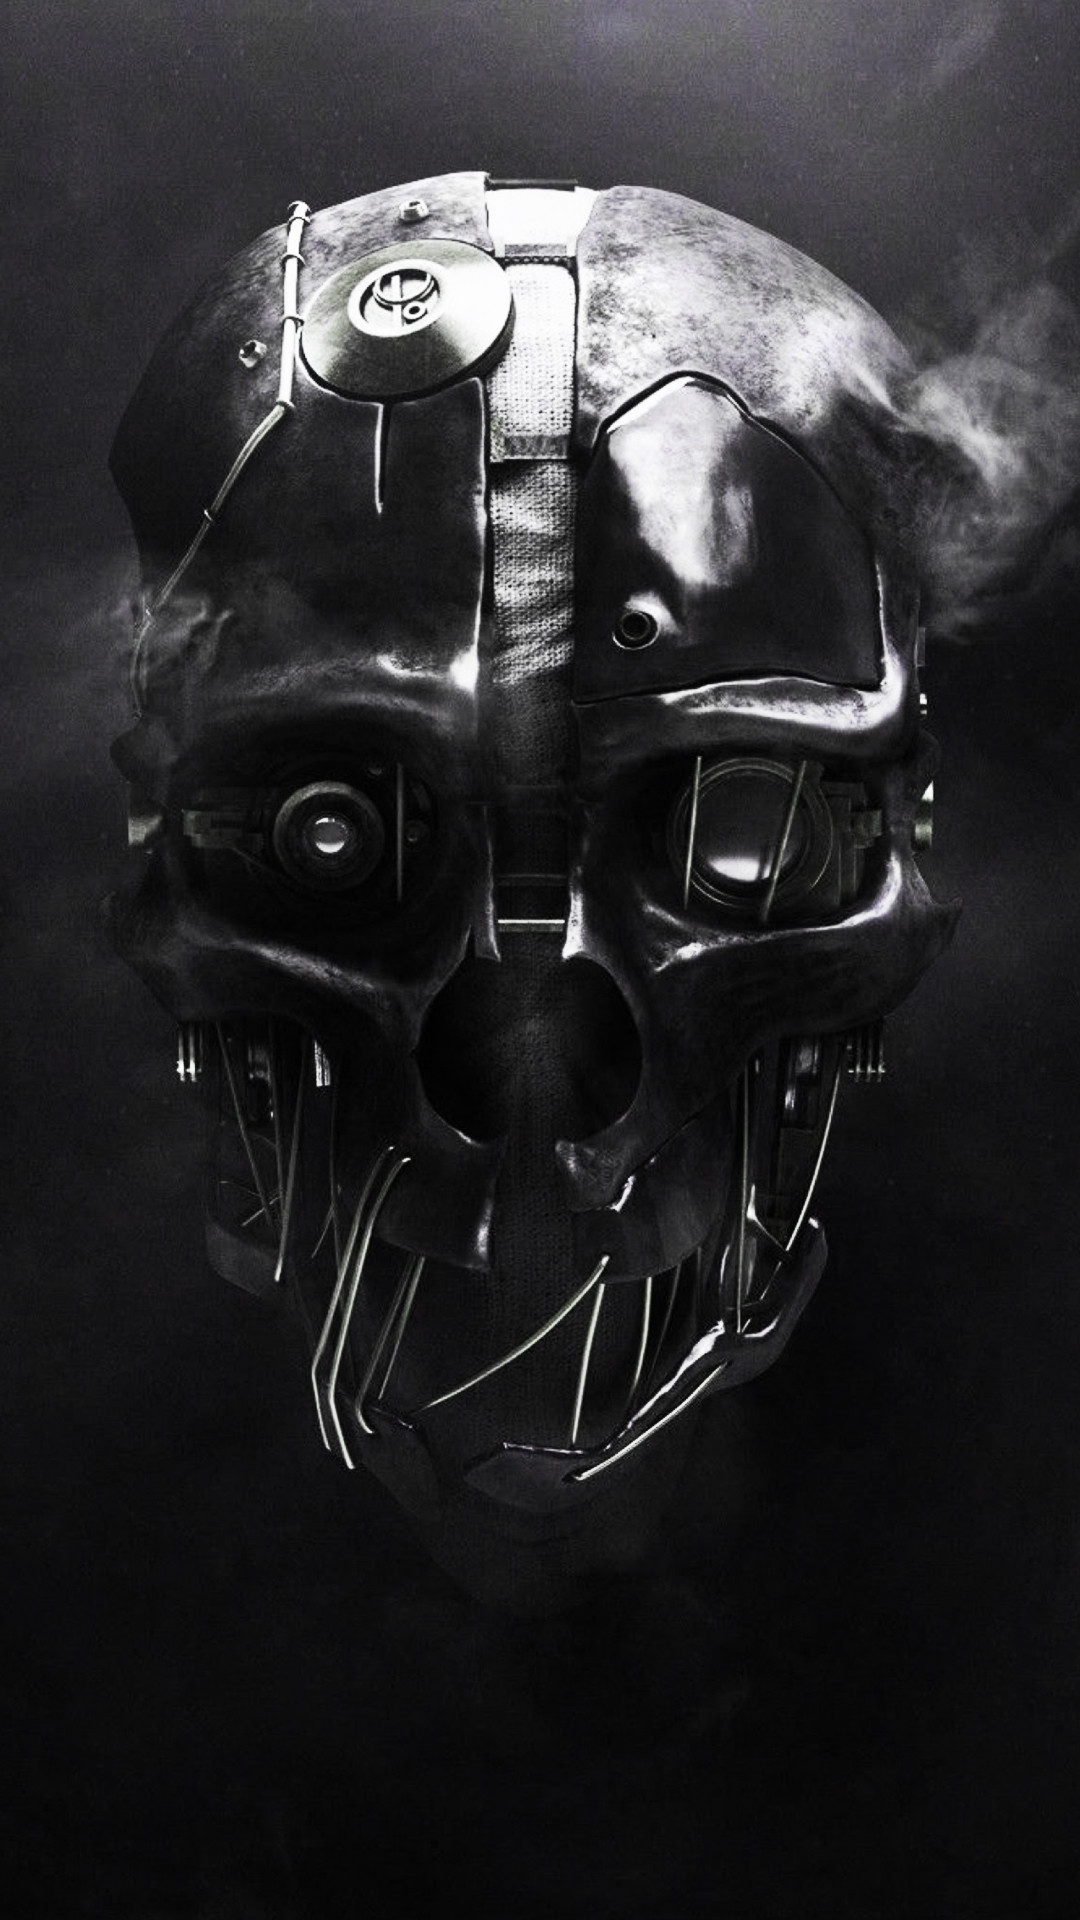 1920x1080 Call Of Duty Ghosts Skull Wallpaper For Android M1i55 Px 12388 KB Game